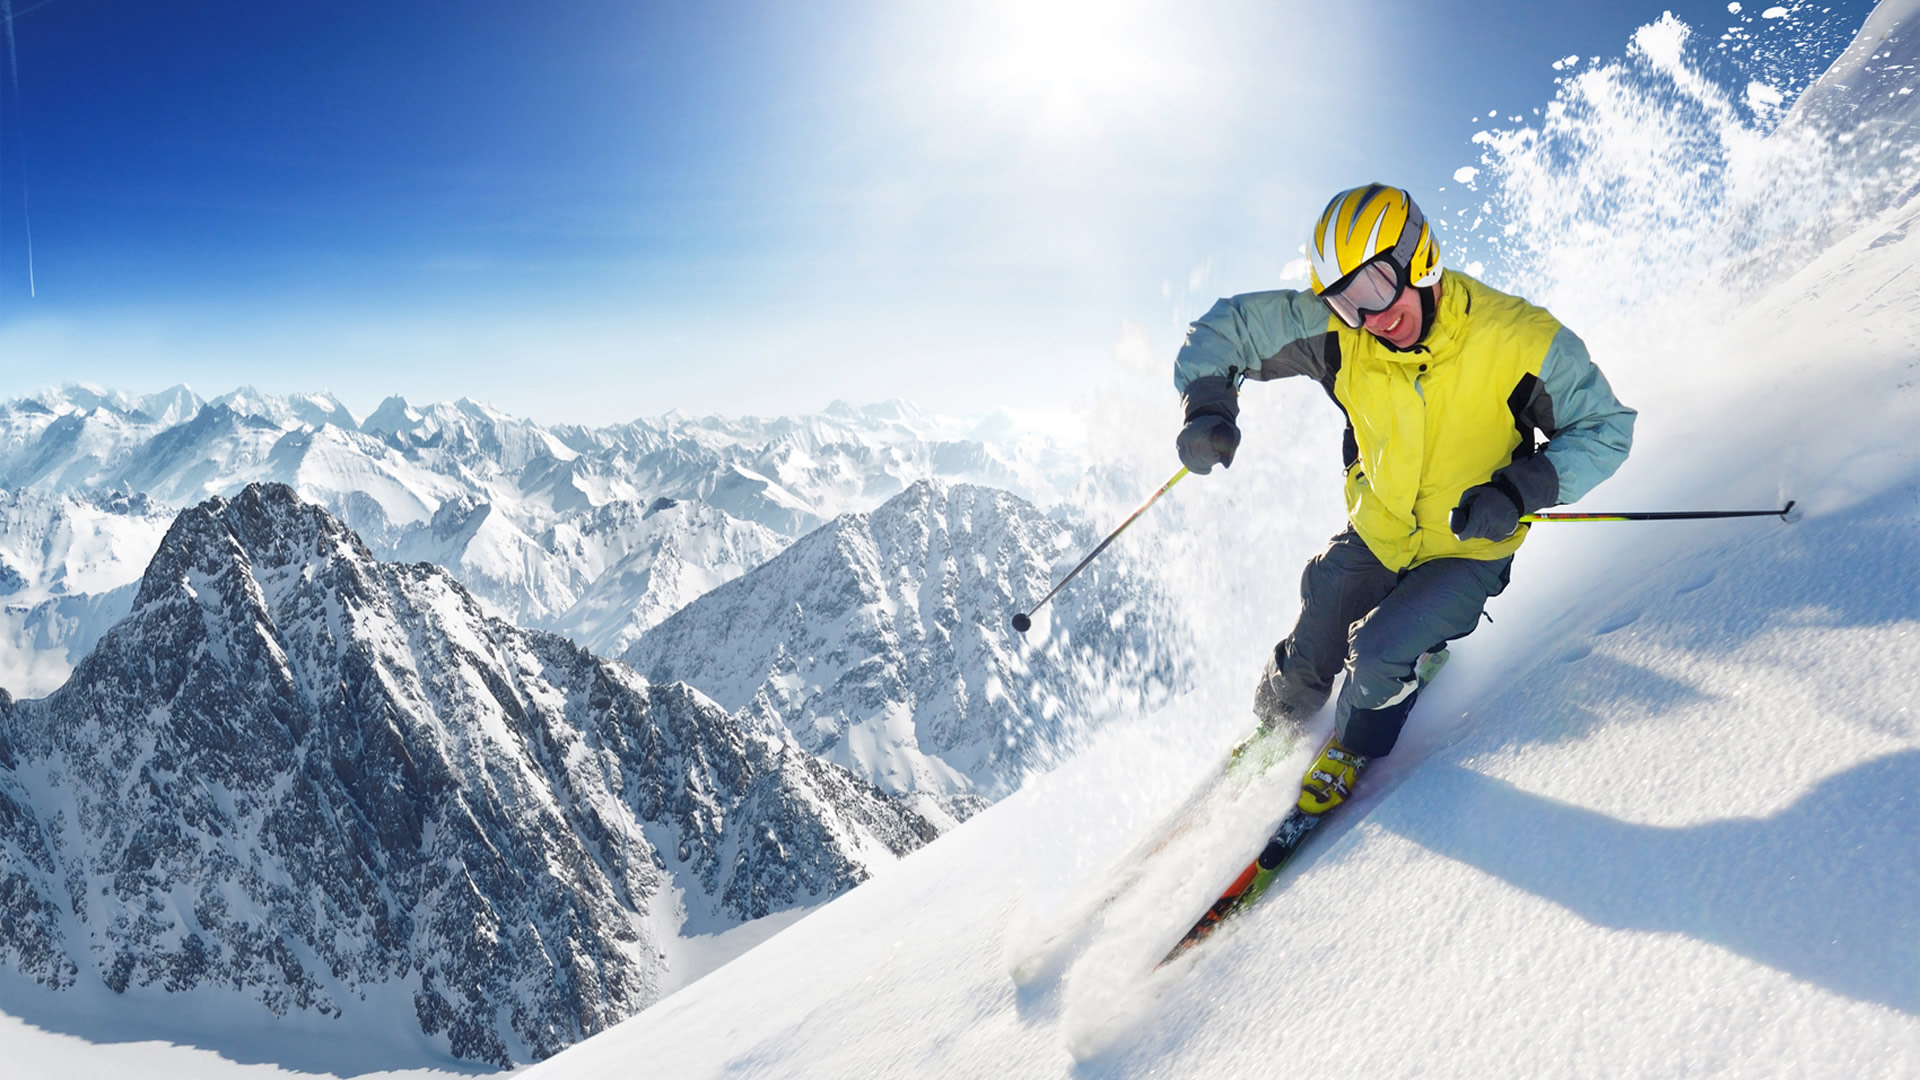 Skiing Wallpaper Skiing Hd Wallpaper Background Image 1920x1080 Id 275538